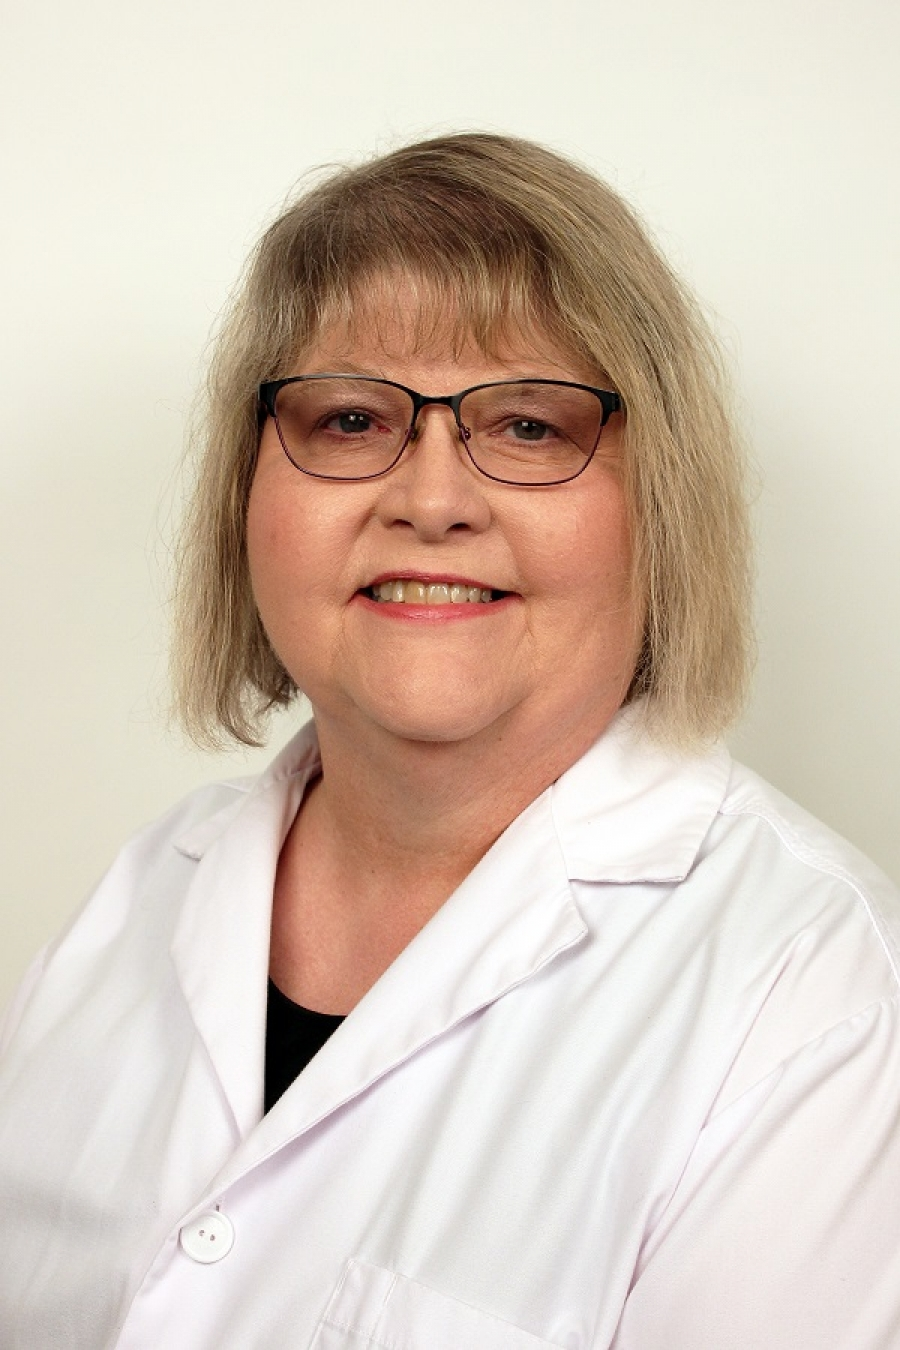 Nurse practitioner to Join FirstHealth Family Medicine in Ellerbe